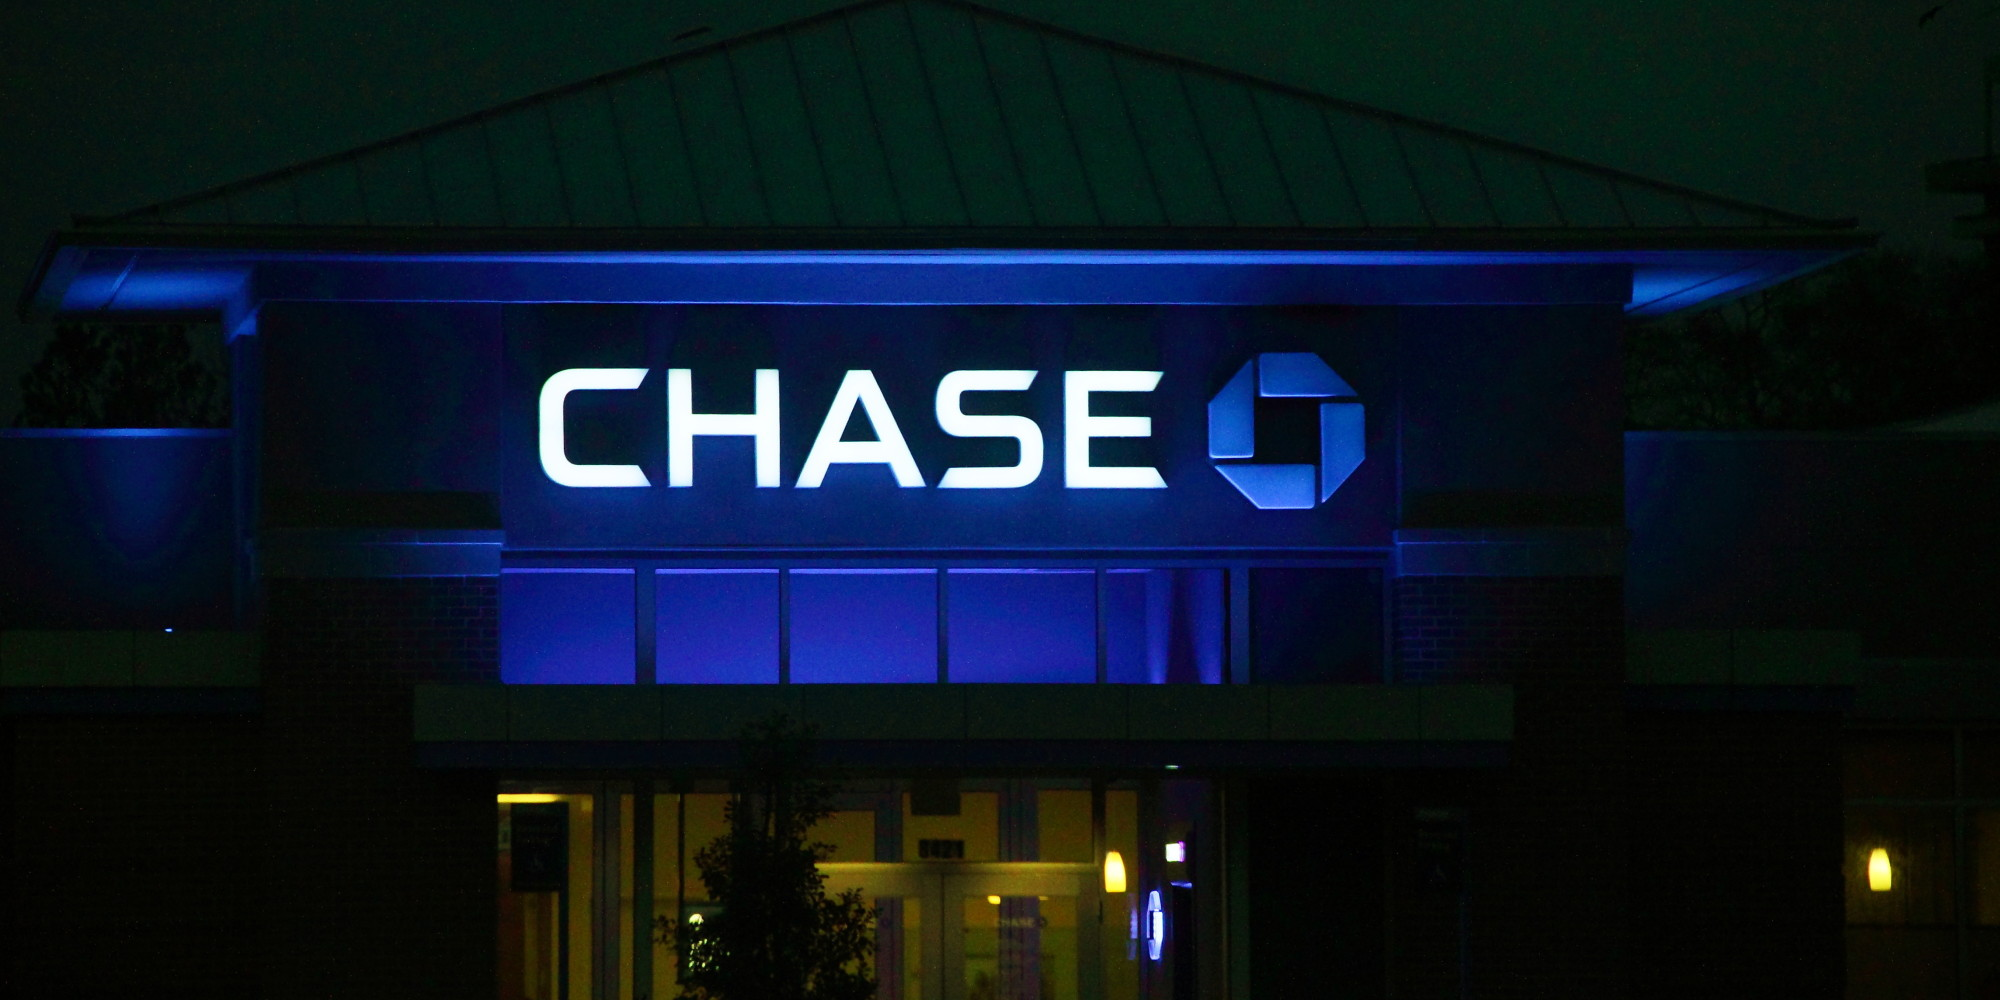 Chase App - Free downloads and reviews - download.cnet.com